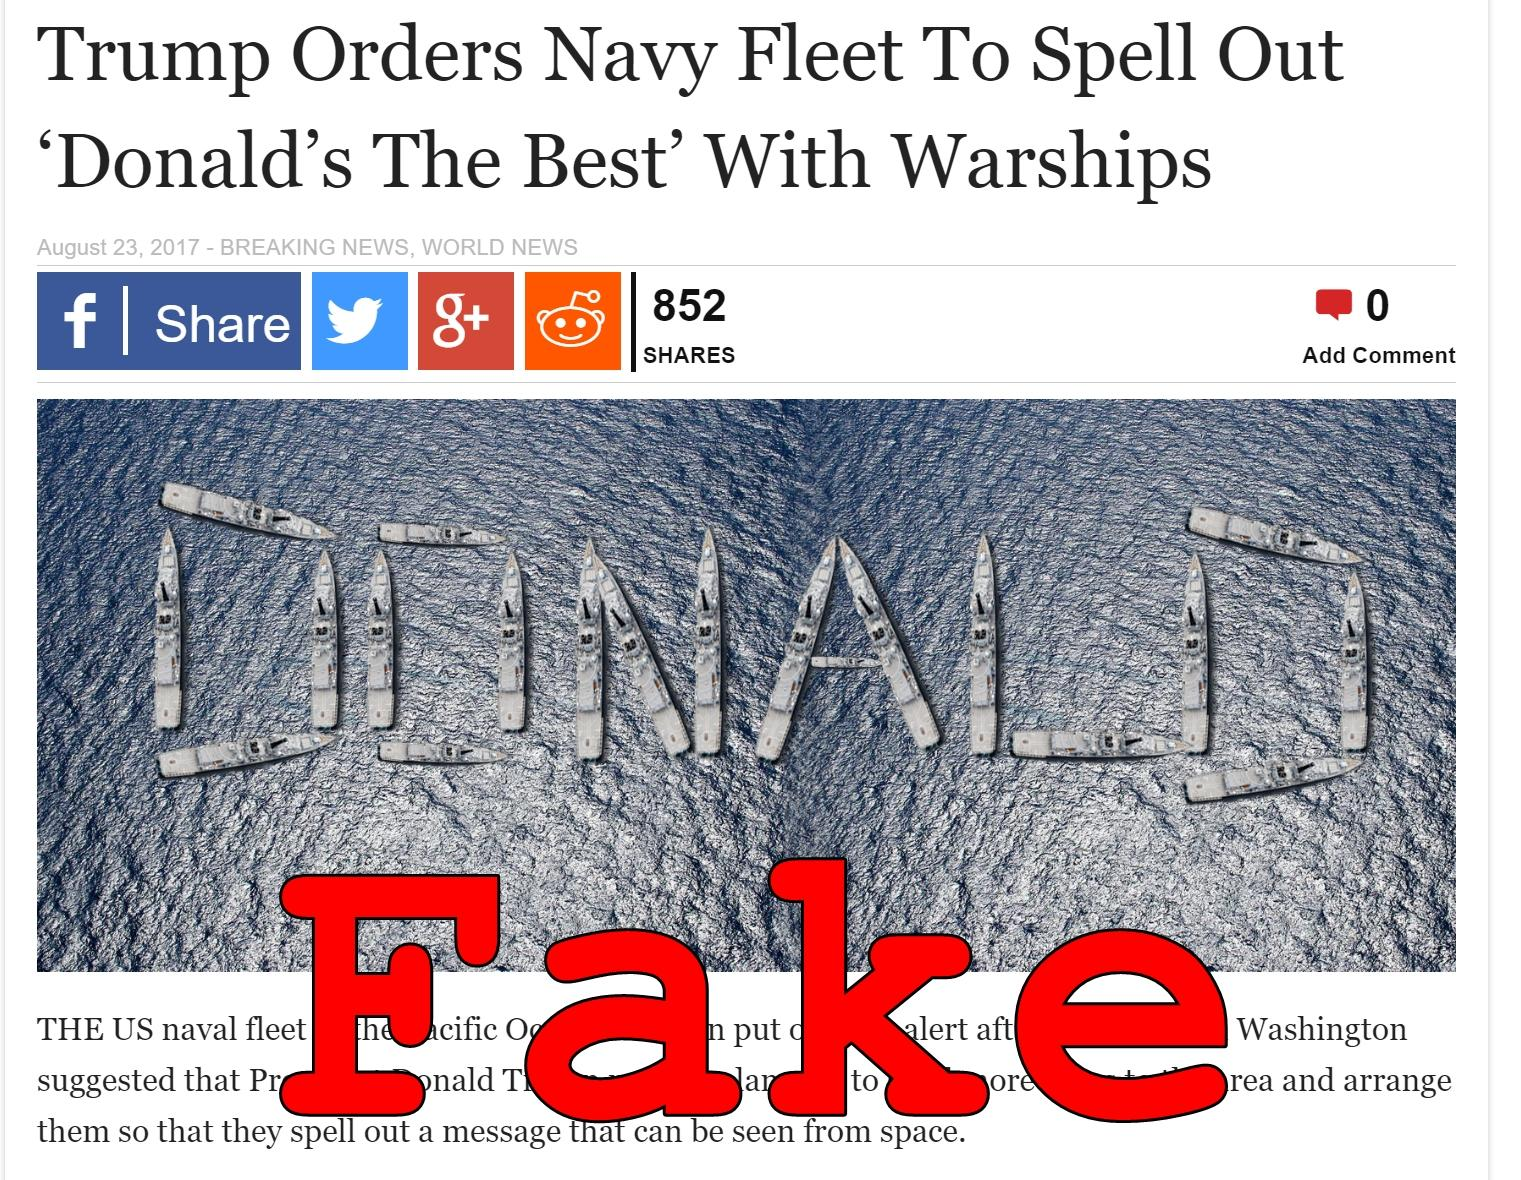 Fake News: Trump Did NOT Order Navy Fleet To Spell Out 'Donald's The Best' With Warships